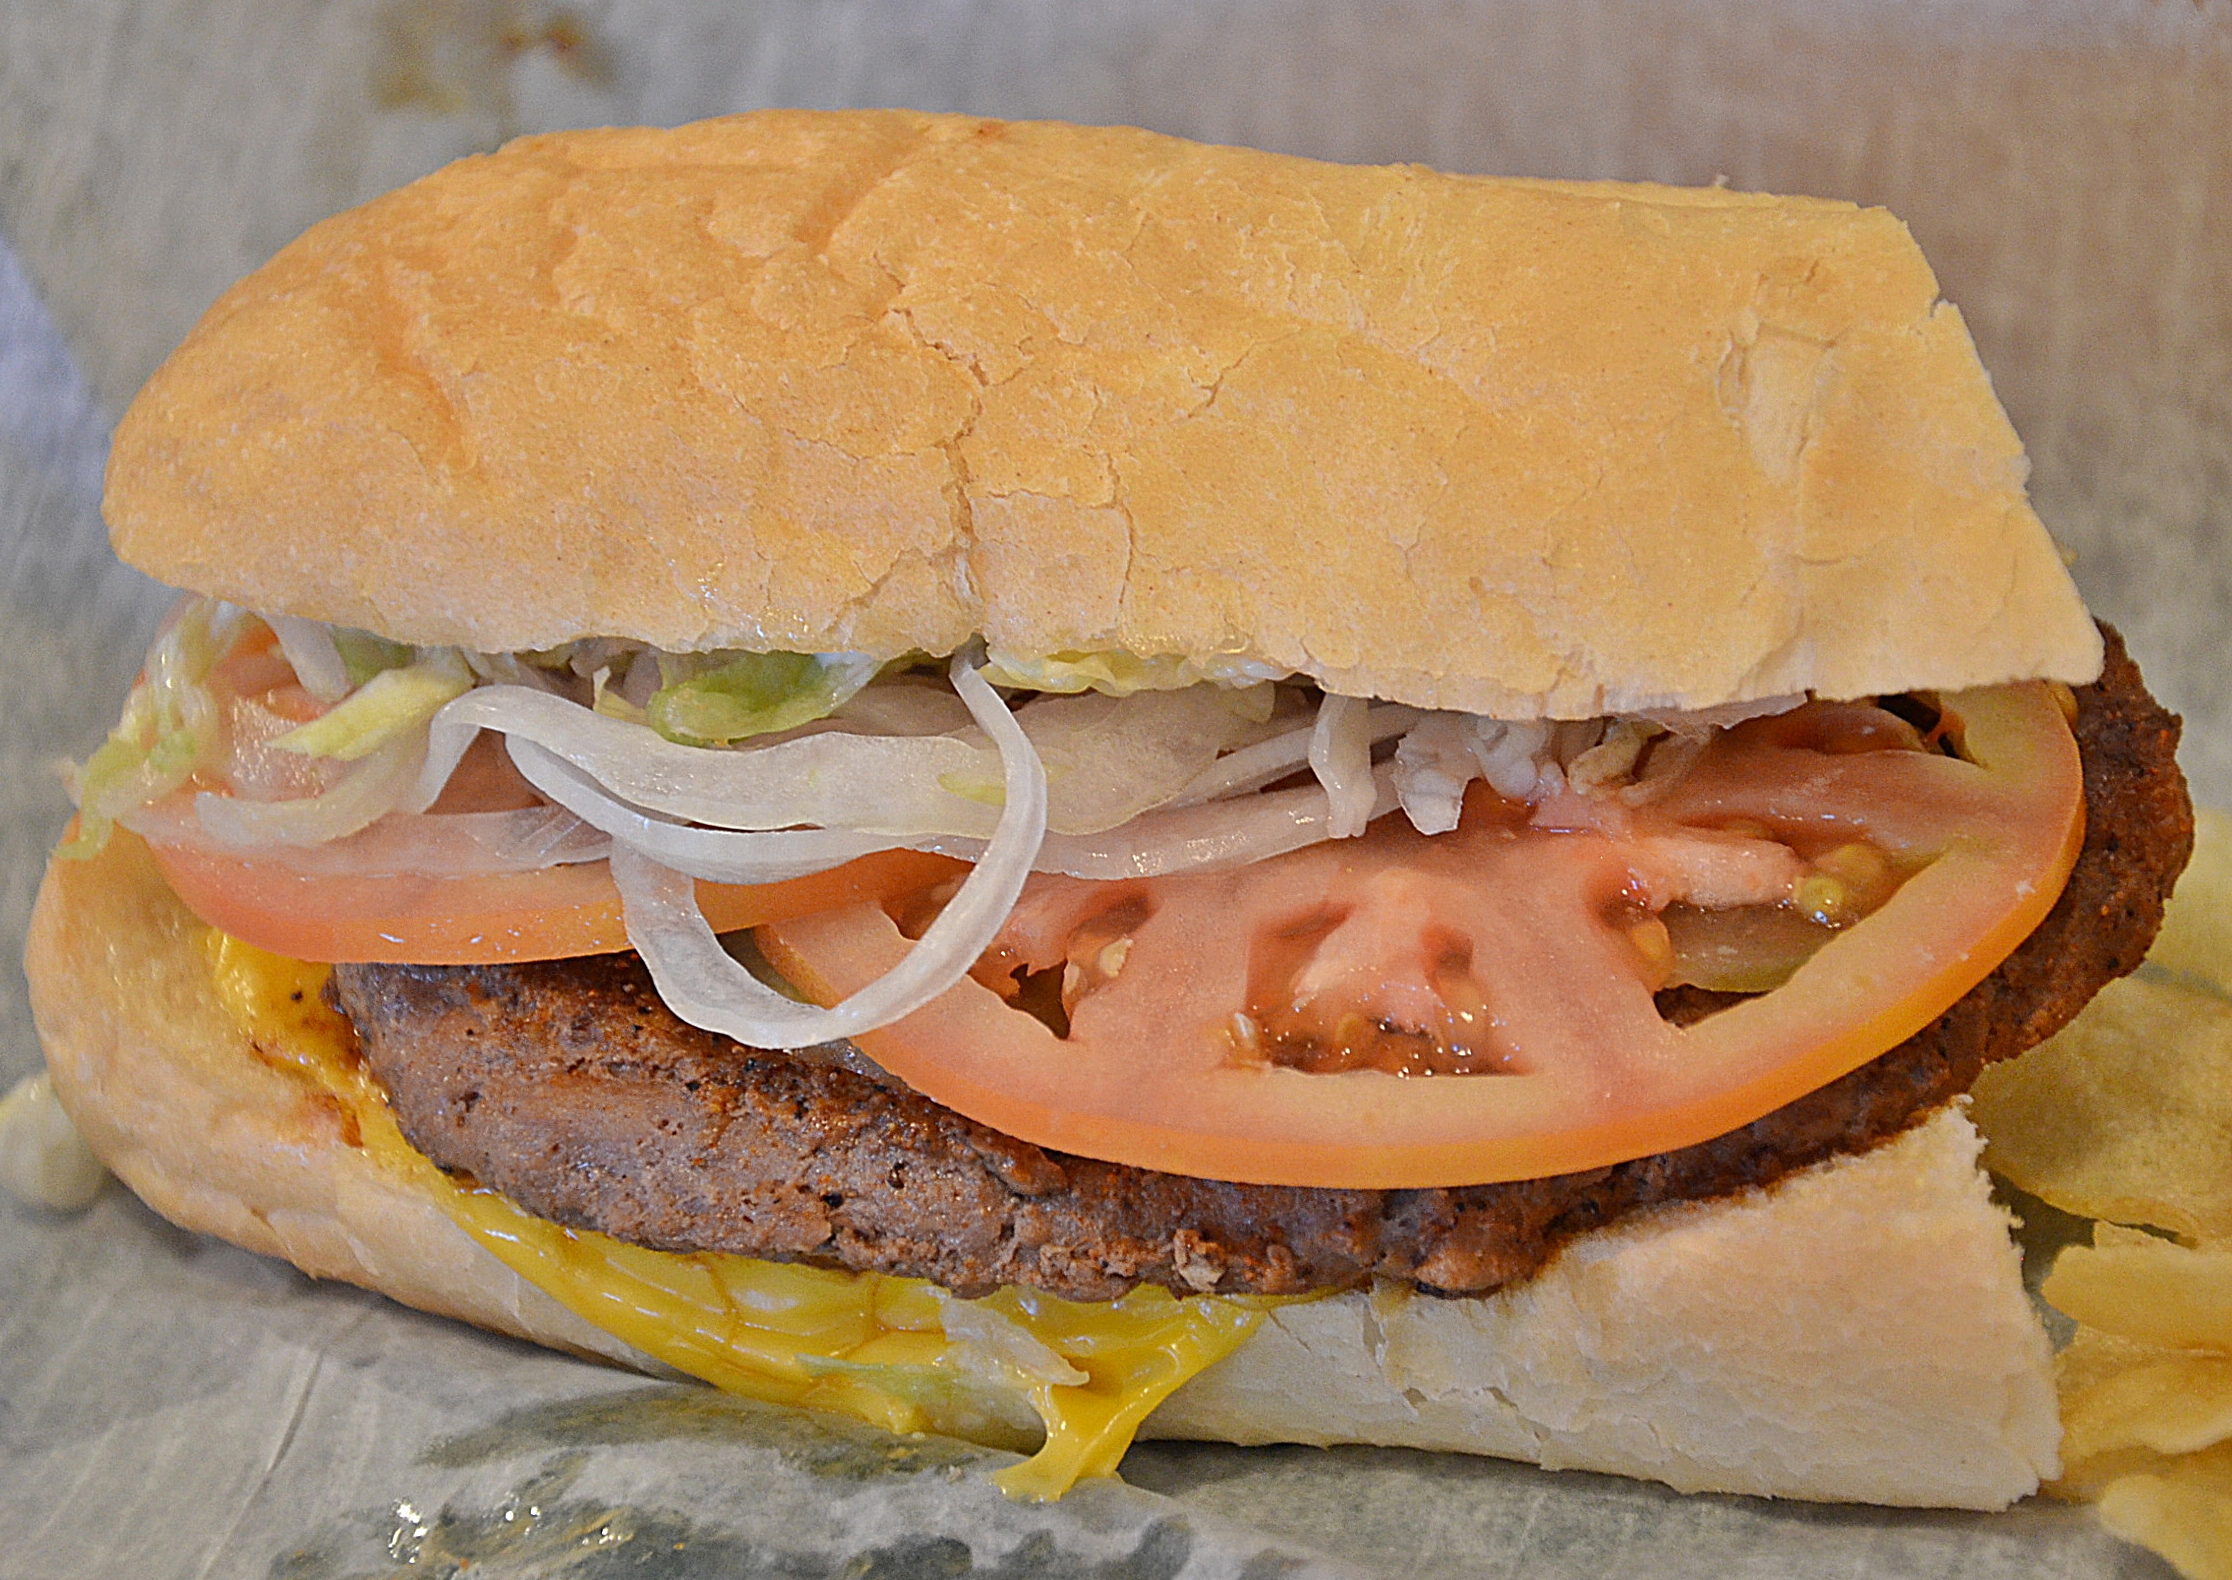 Juliens Poboys in Broussard, LA